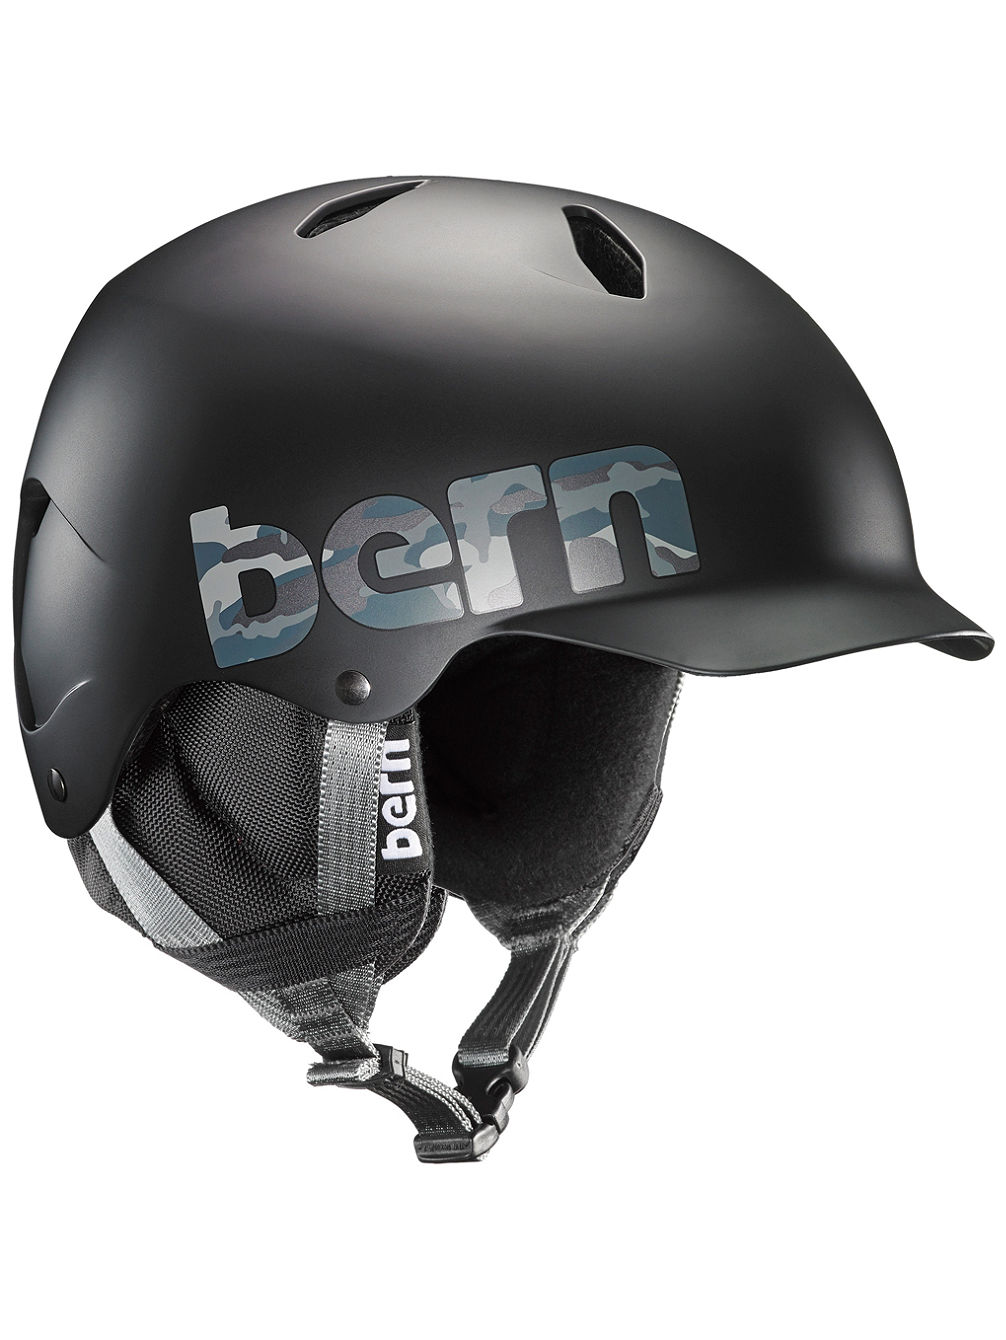 Bandito Eps Snowboard Helmet Youth Youth